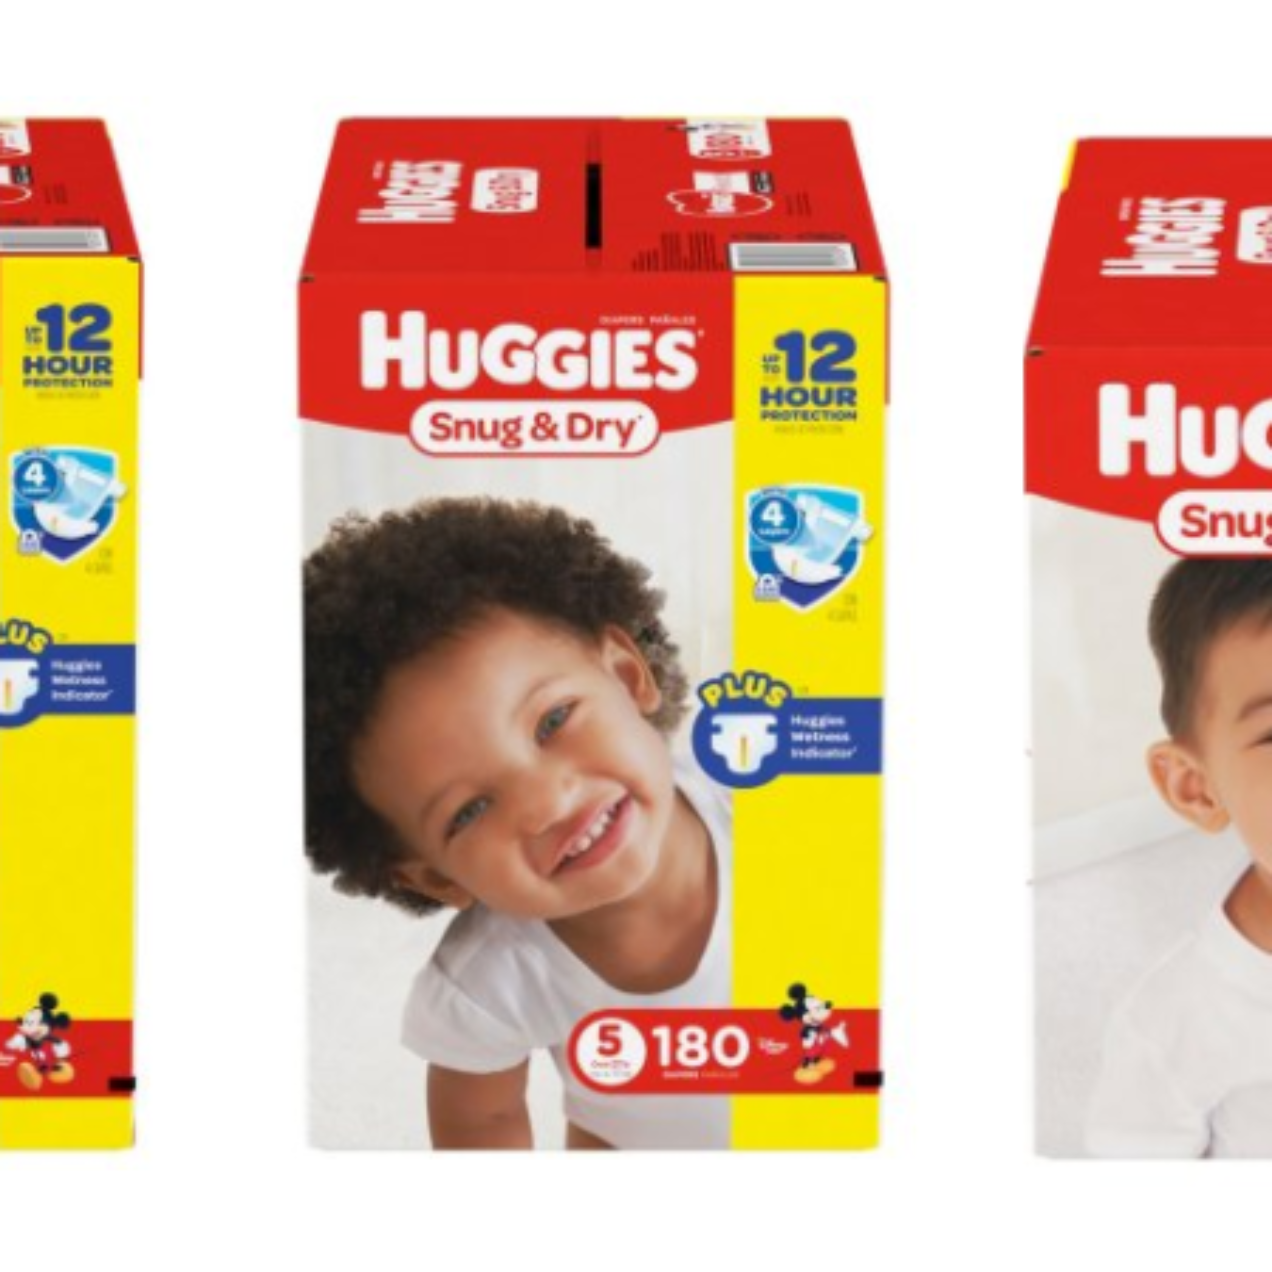 Huggies Snug & Dry Diapers – HUGE Boxes Only $28.98 Shipped